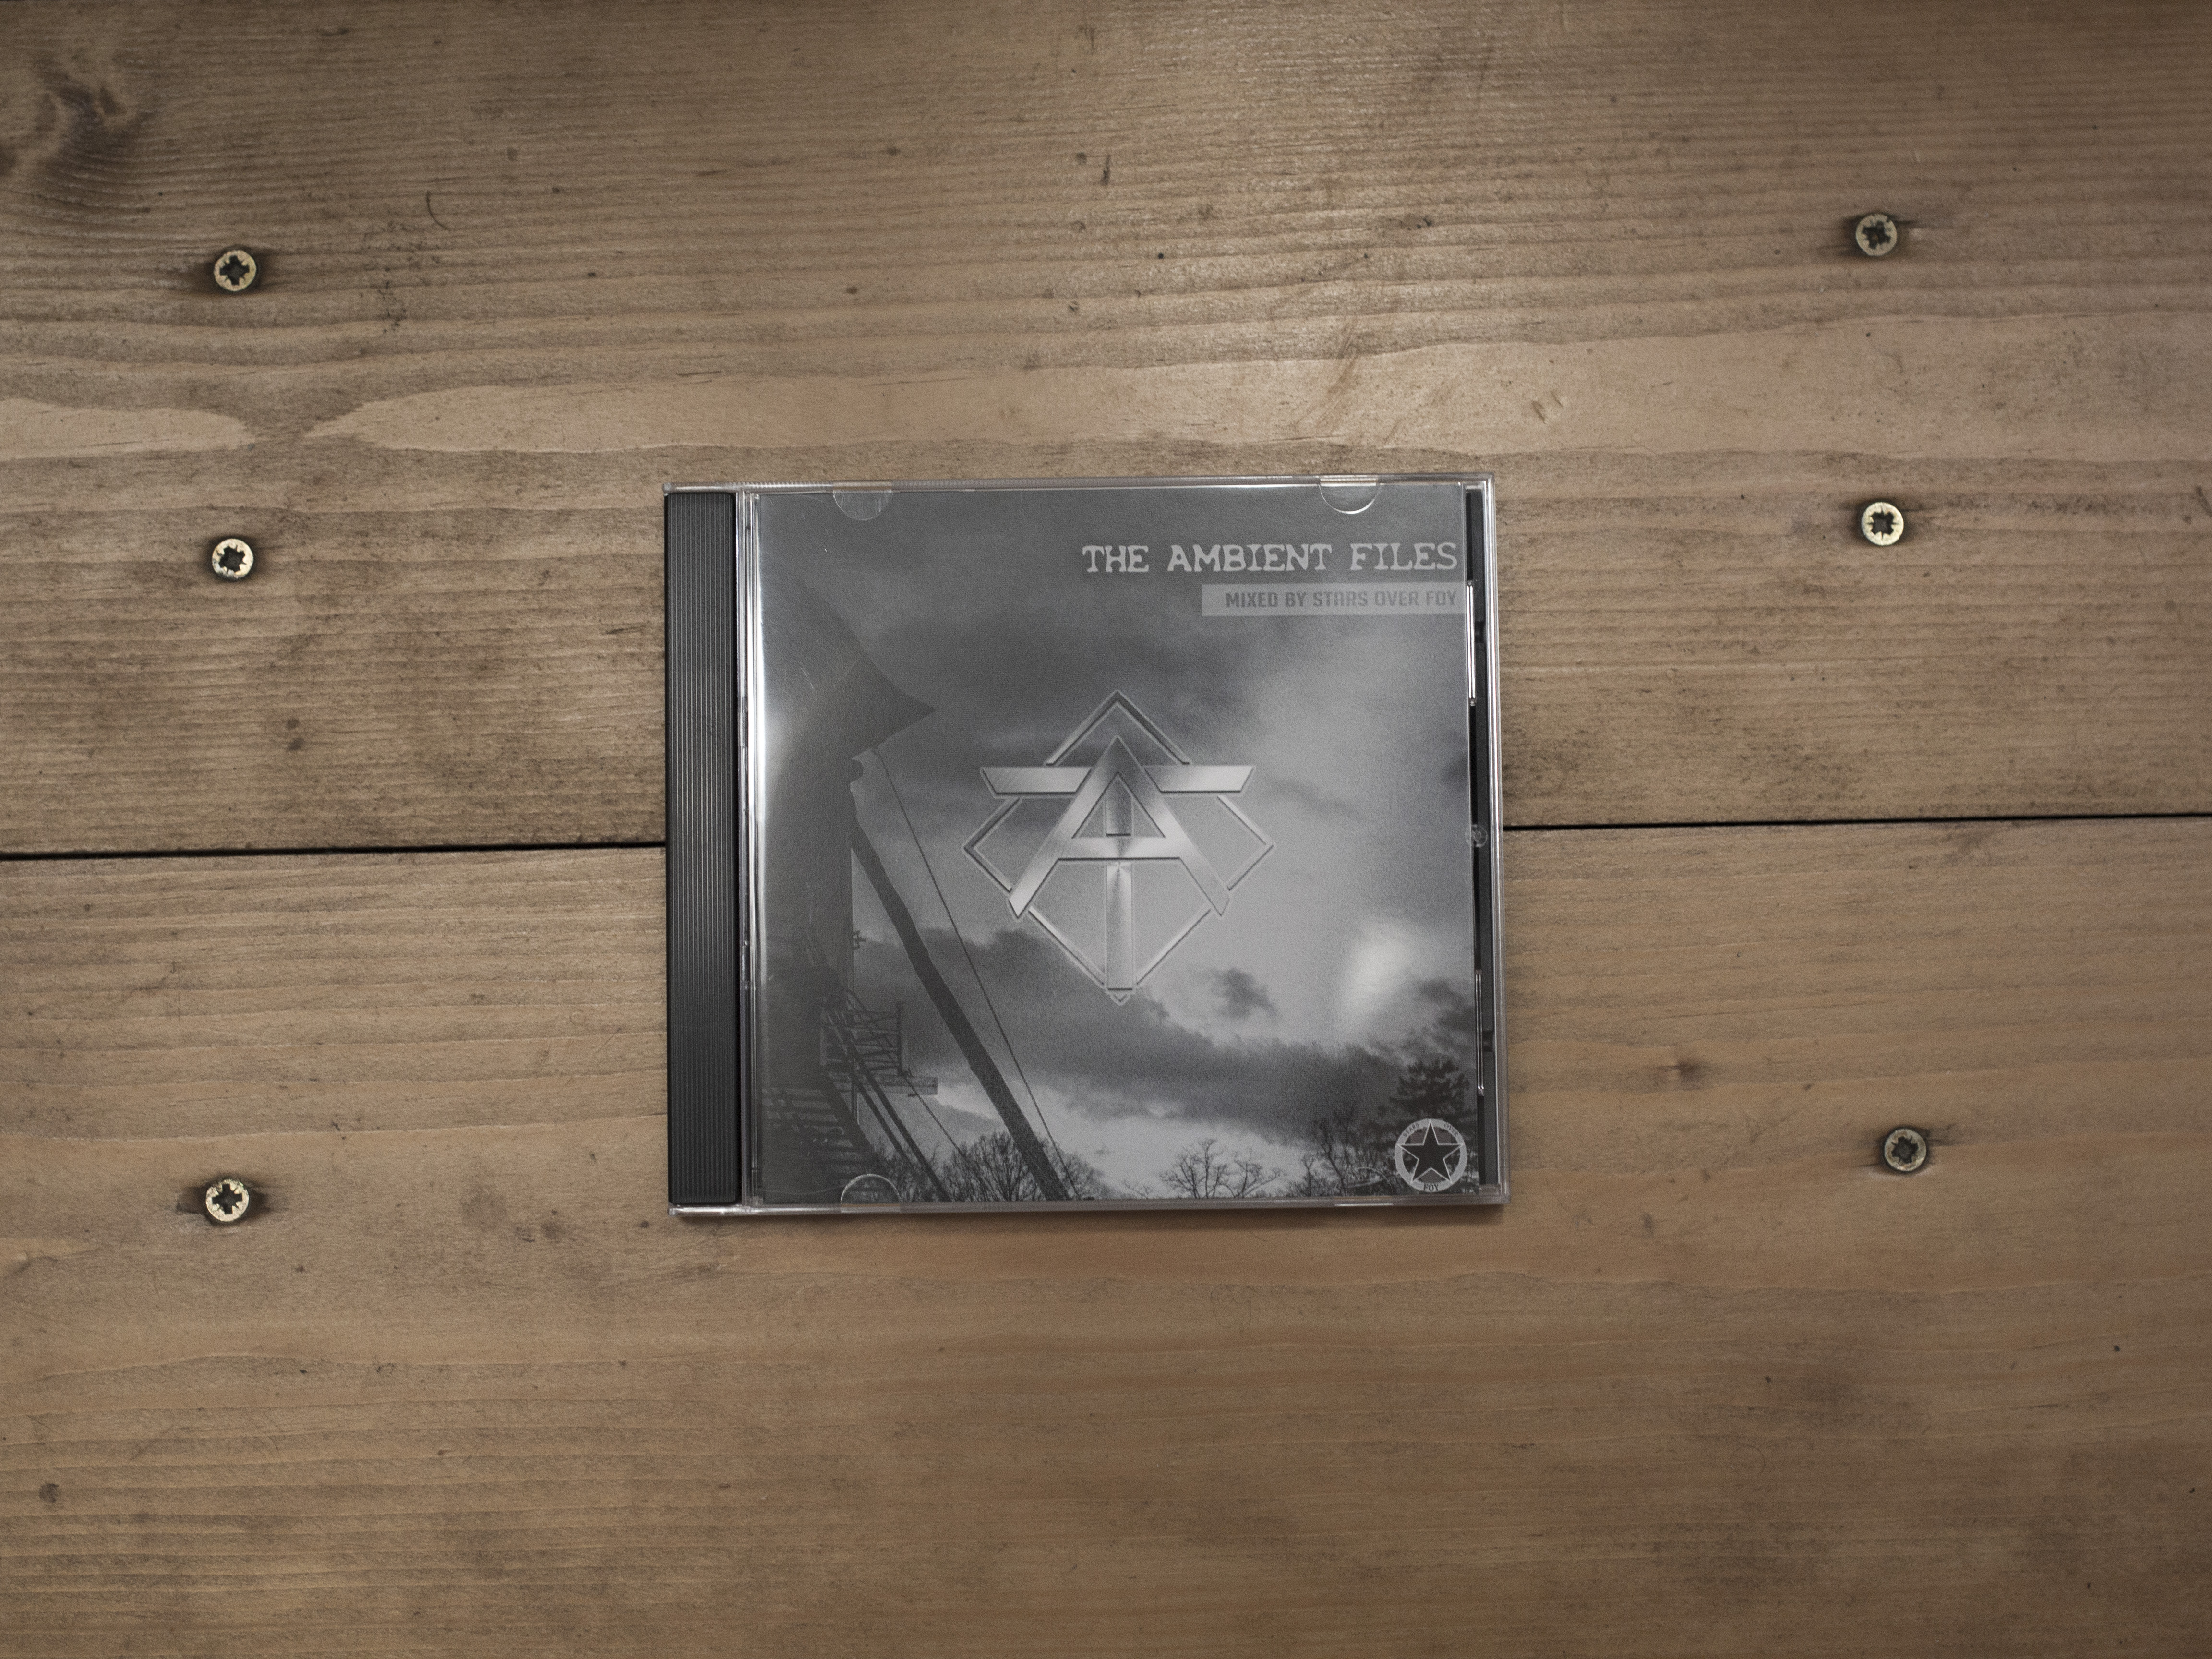 The Ambient Files (MIxed by Stars Over Foy) CD [2018]